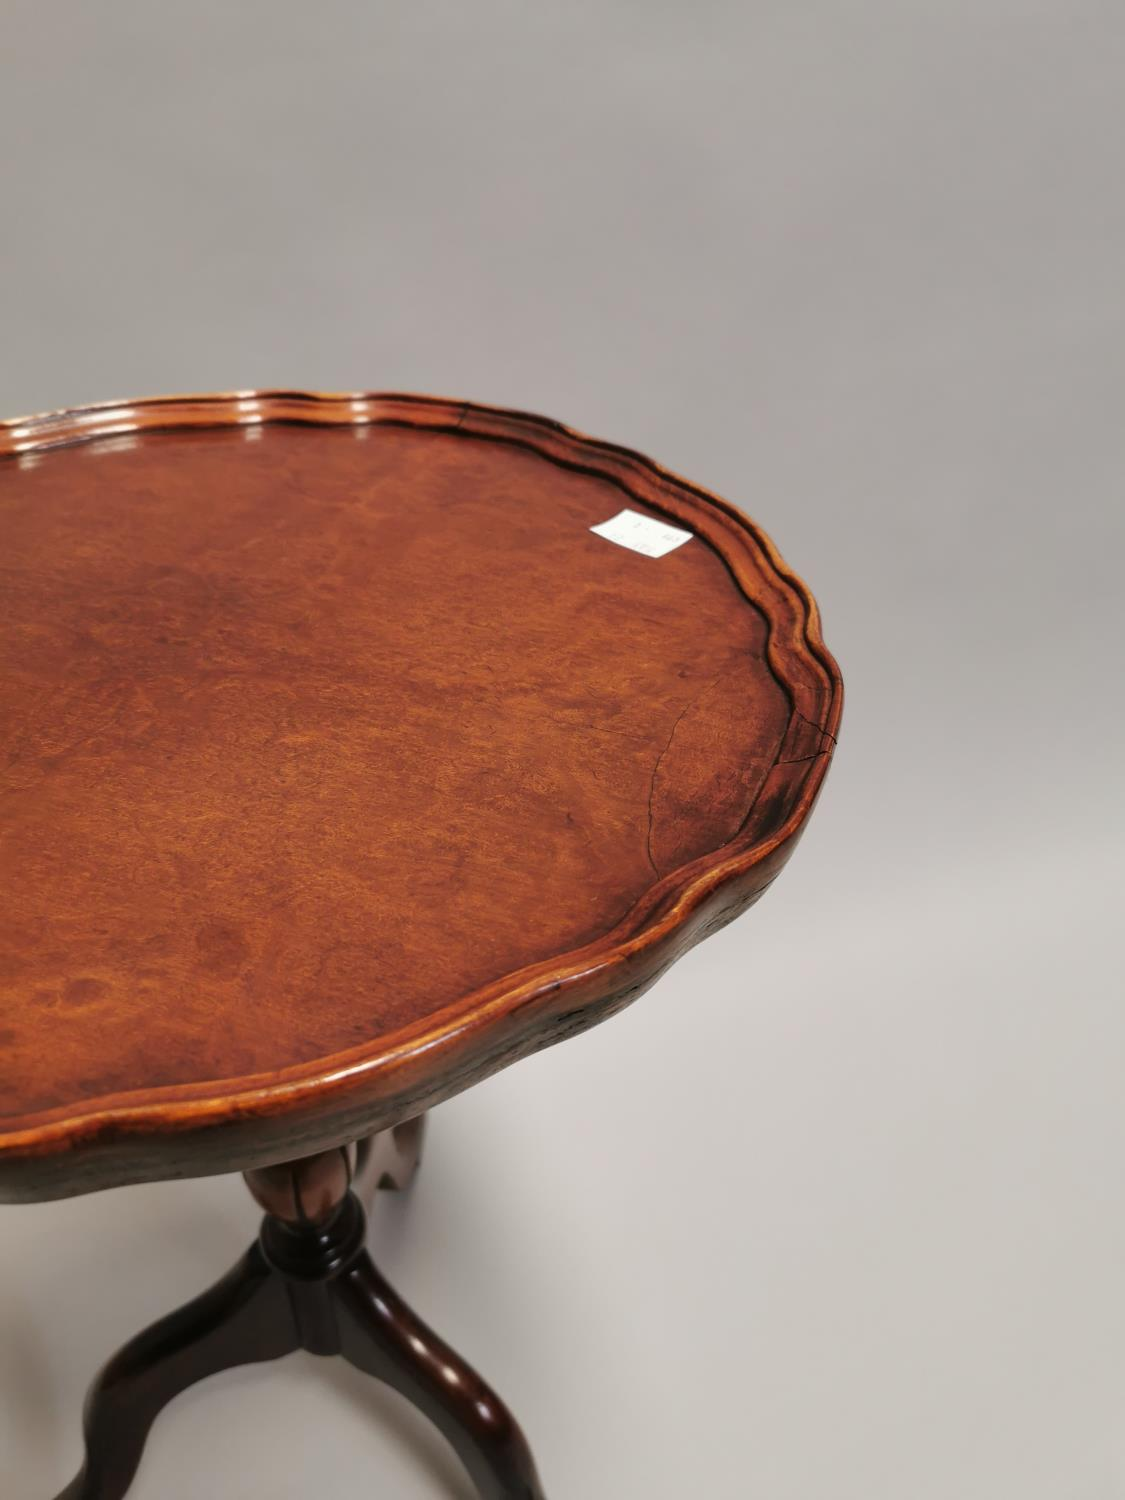 Edwardian walnut wine table on turned column and three outswept legs 53 cm H x 39 cm Dia. - Image 3 of 3